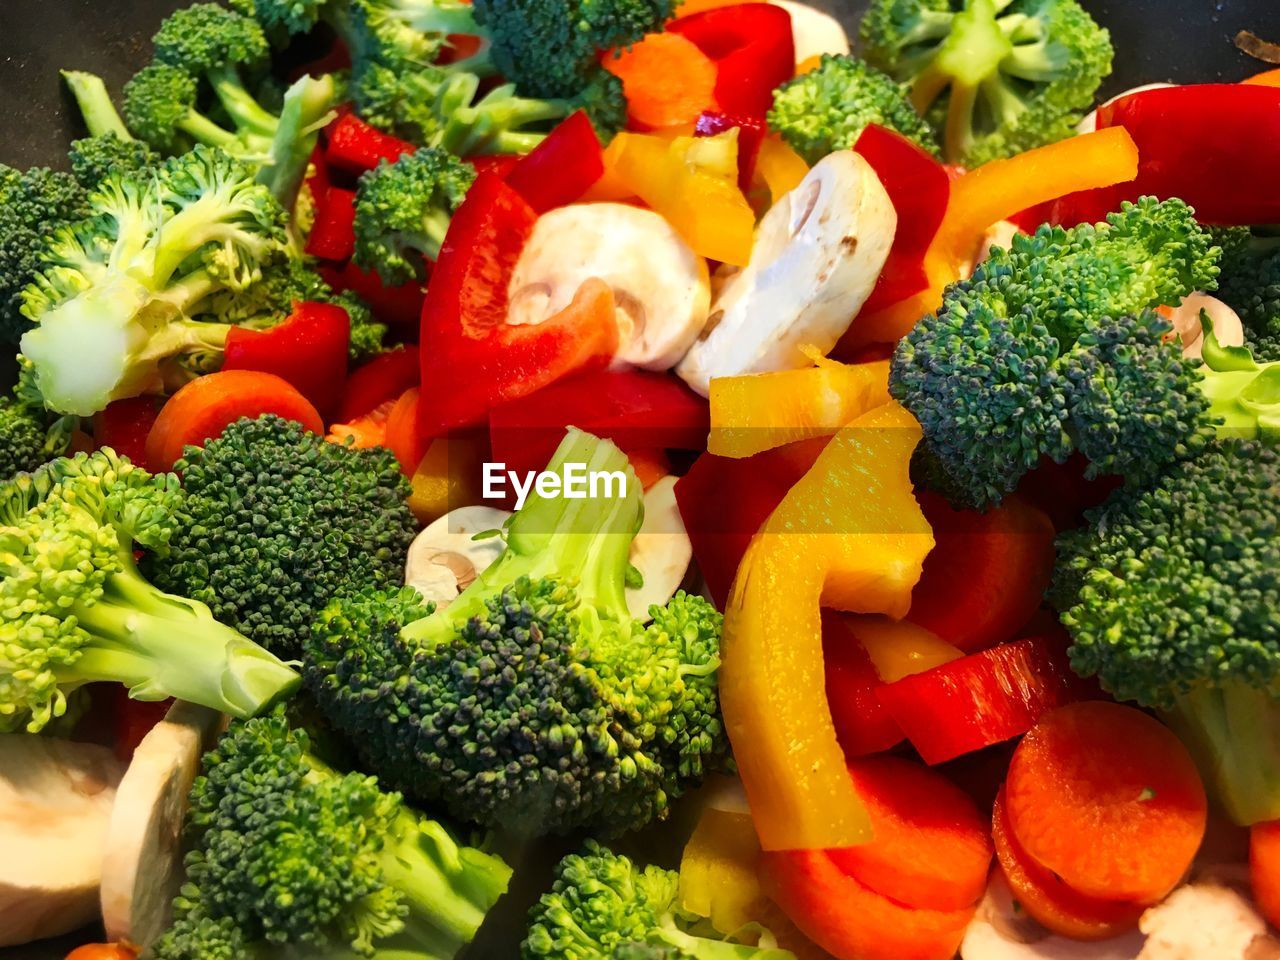 vegetable, broccoli, food and drink, food, healthy eating, wellbeing, green, freshness, bell pepper, choice, indoors, pepper, variation, carrot, no people, red, green color, root vegetable, chopped, tomato, vegetarian food